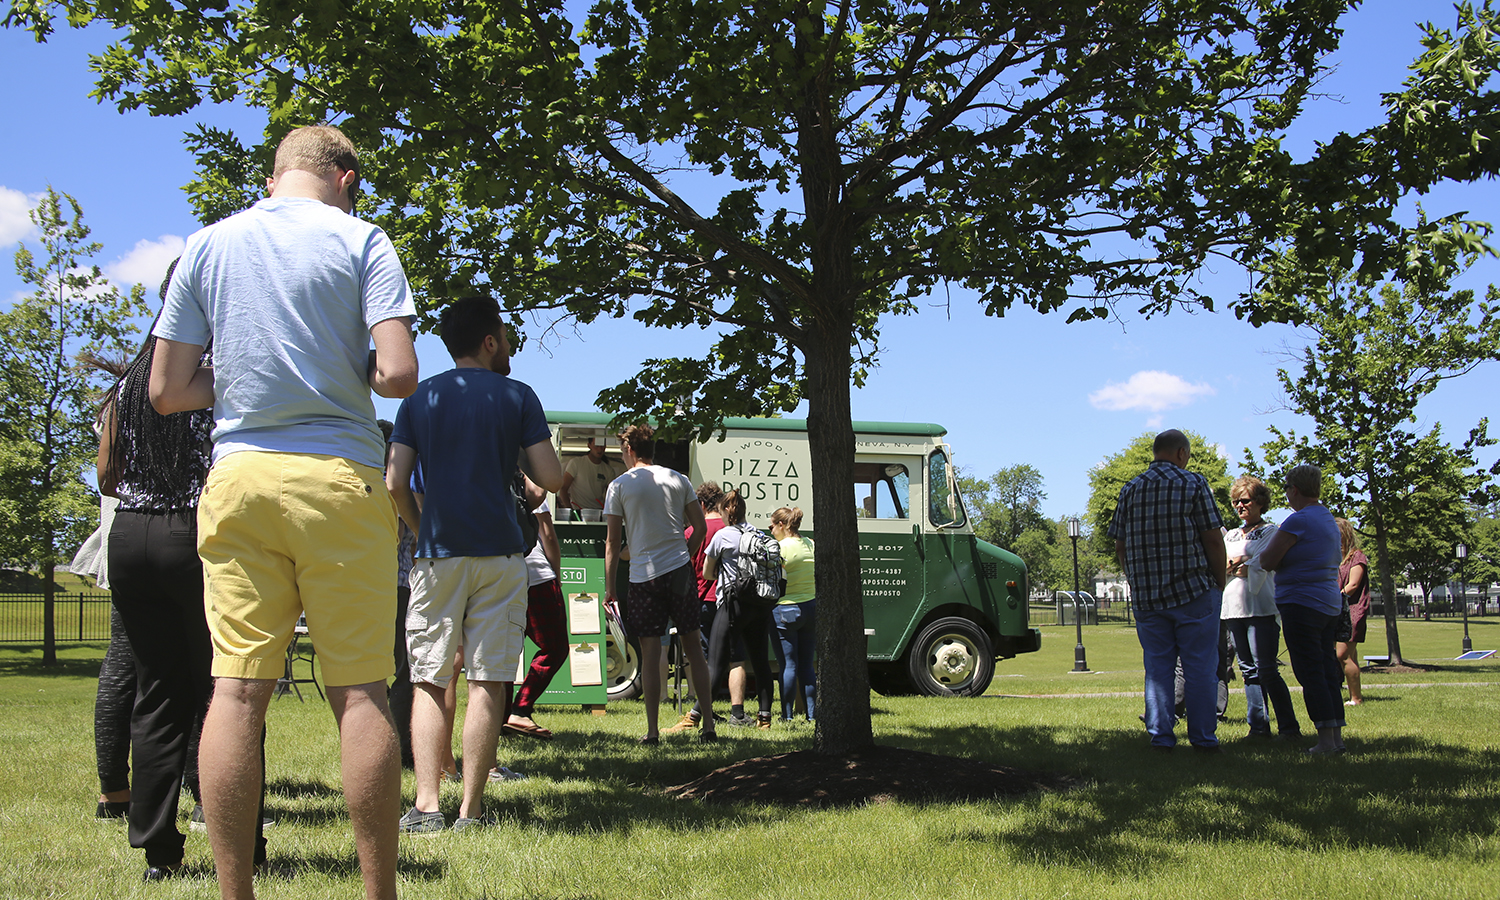 Students, faculty and staff line up for the Pizza Posto food truck on the Scandling Campus Center Patio. The Pizza Posto truck is owned by Stu Lieblein '90 Pitch Contest winner Sam Solomon '17.